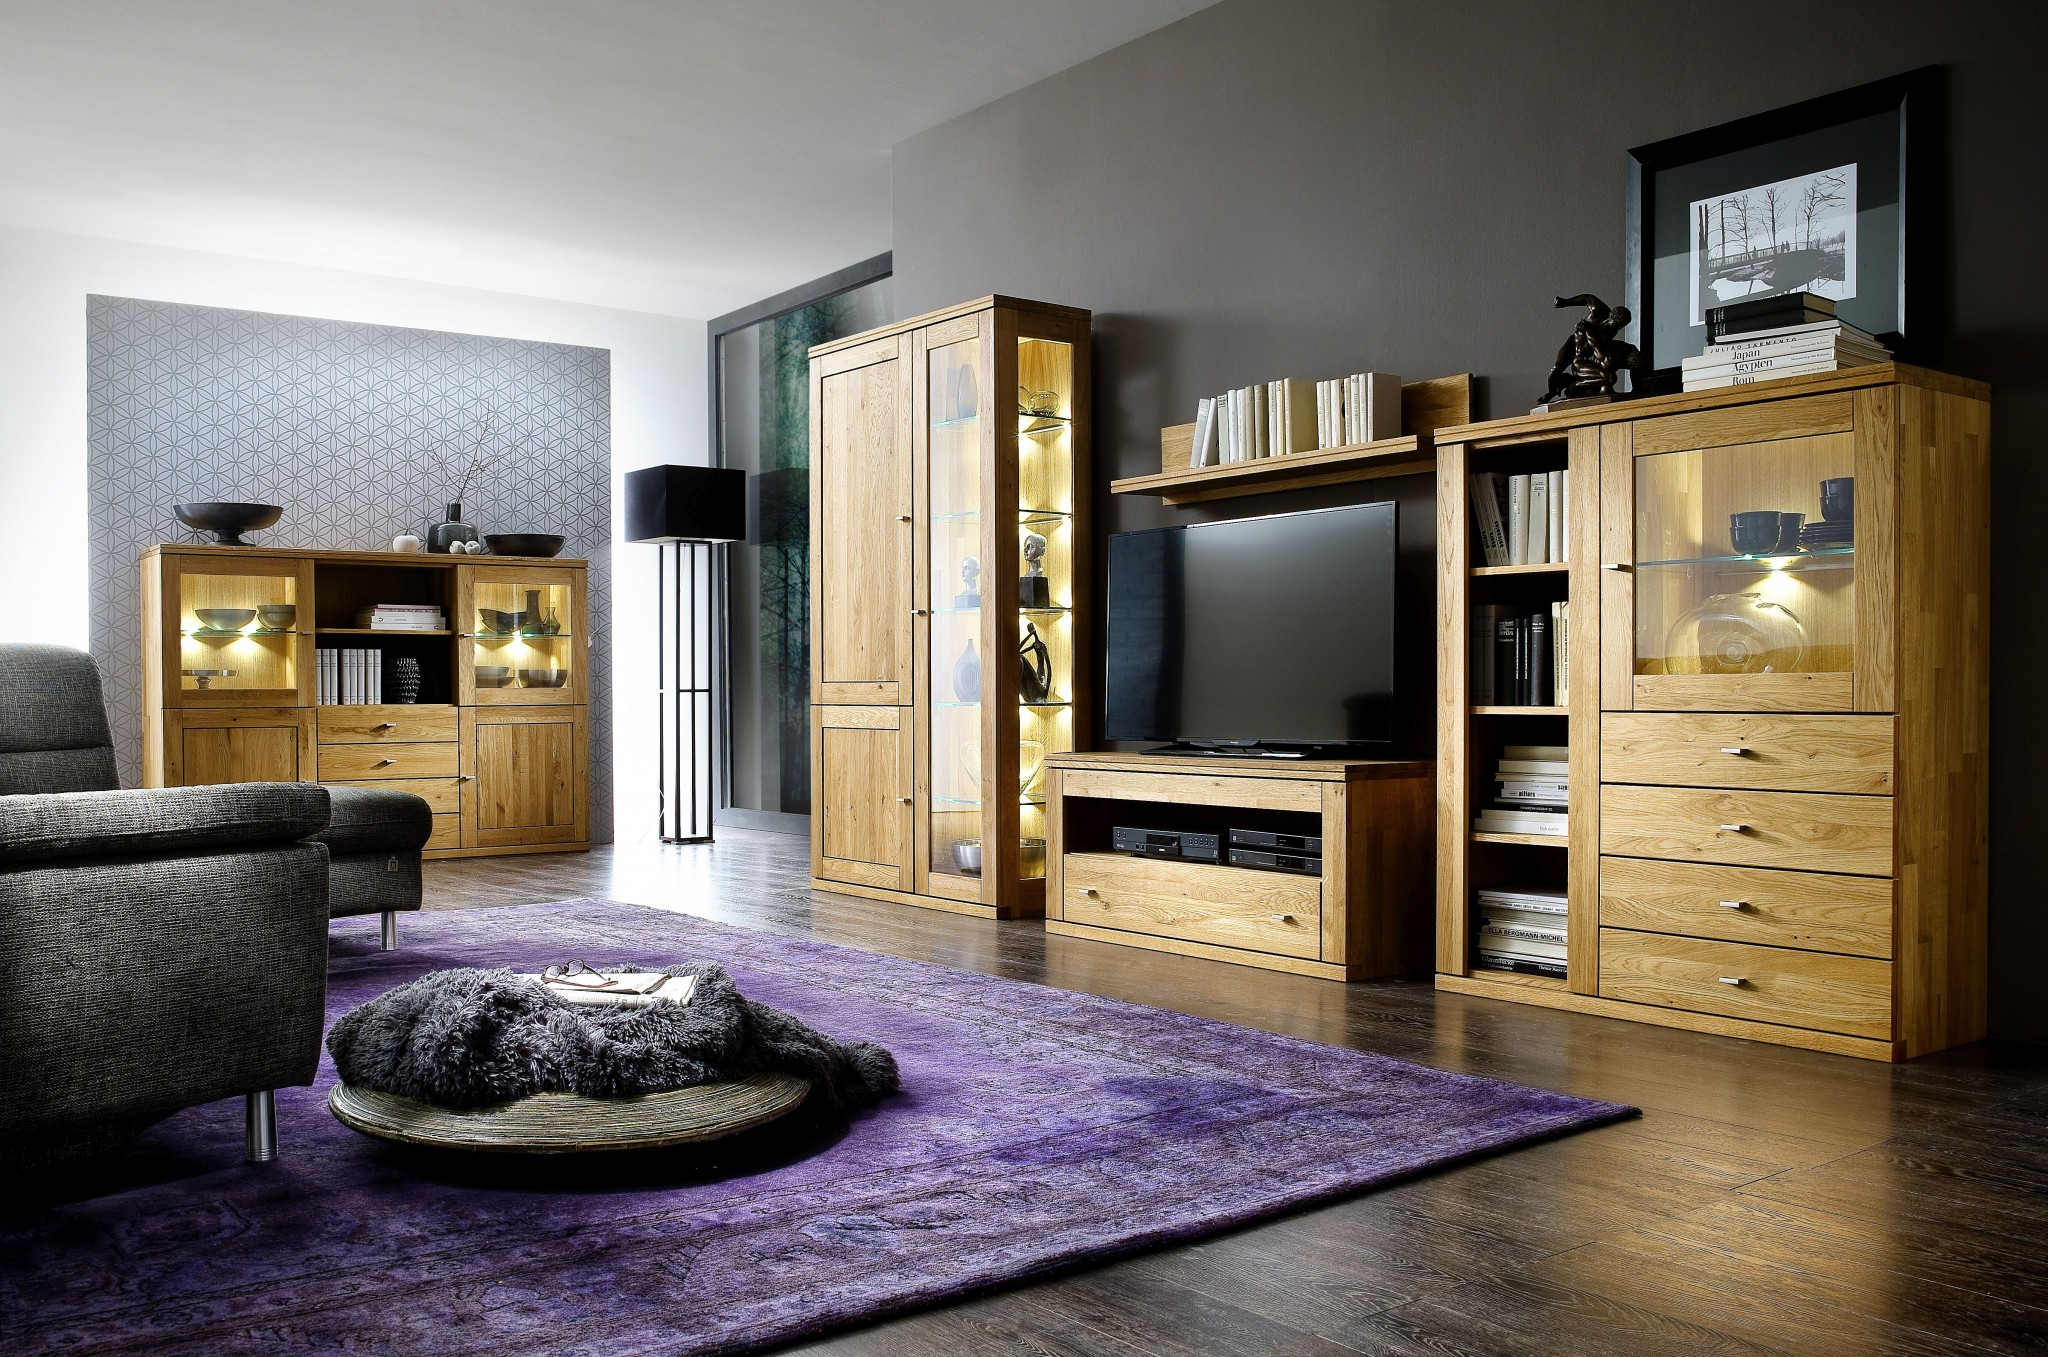 wohnwand verona in wildeiche massiv ge lt ca 370 cm breit. Black Bedroom Furniture Sets. Home Design Ideas